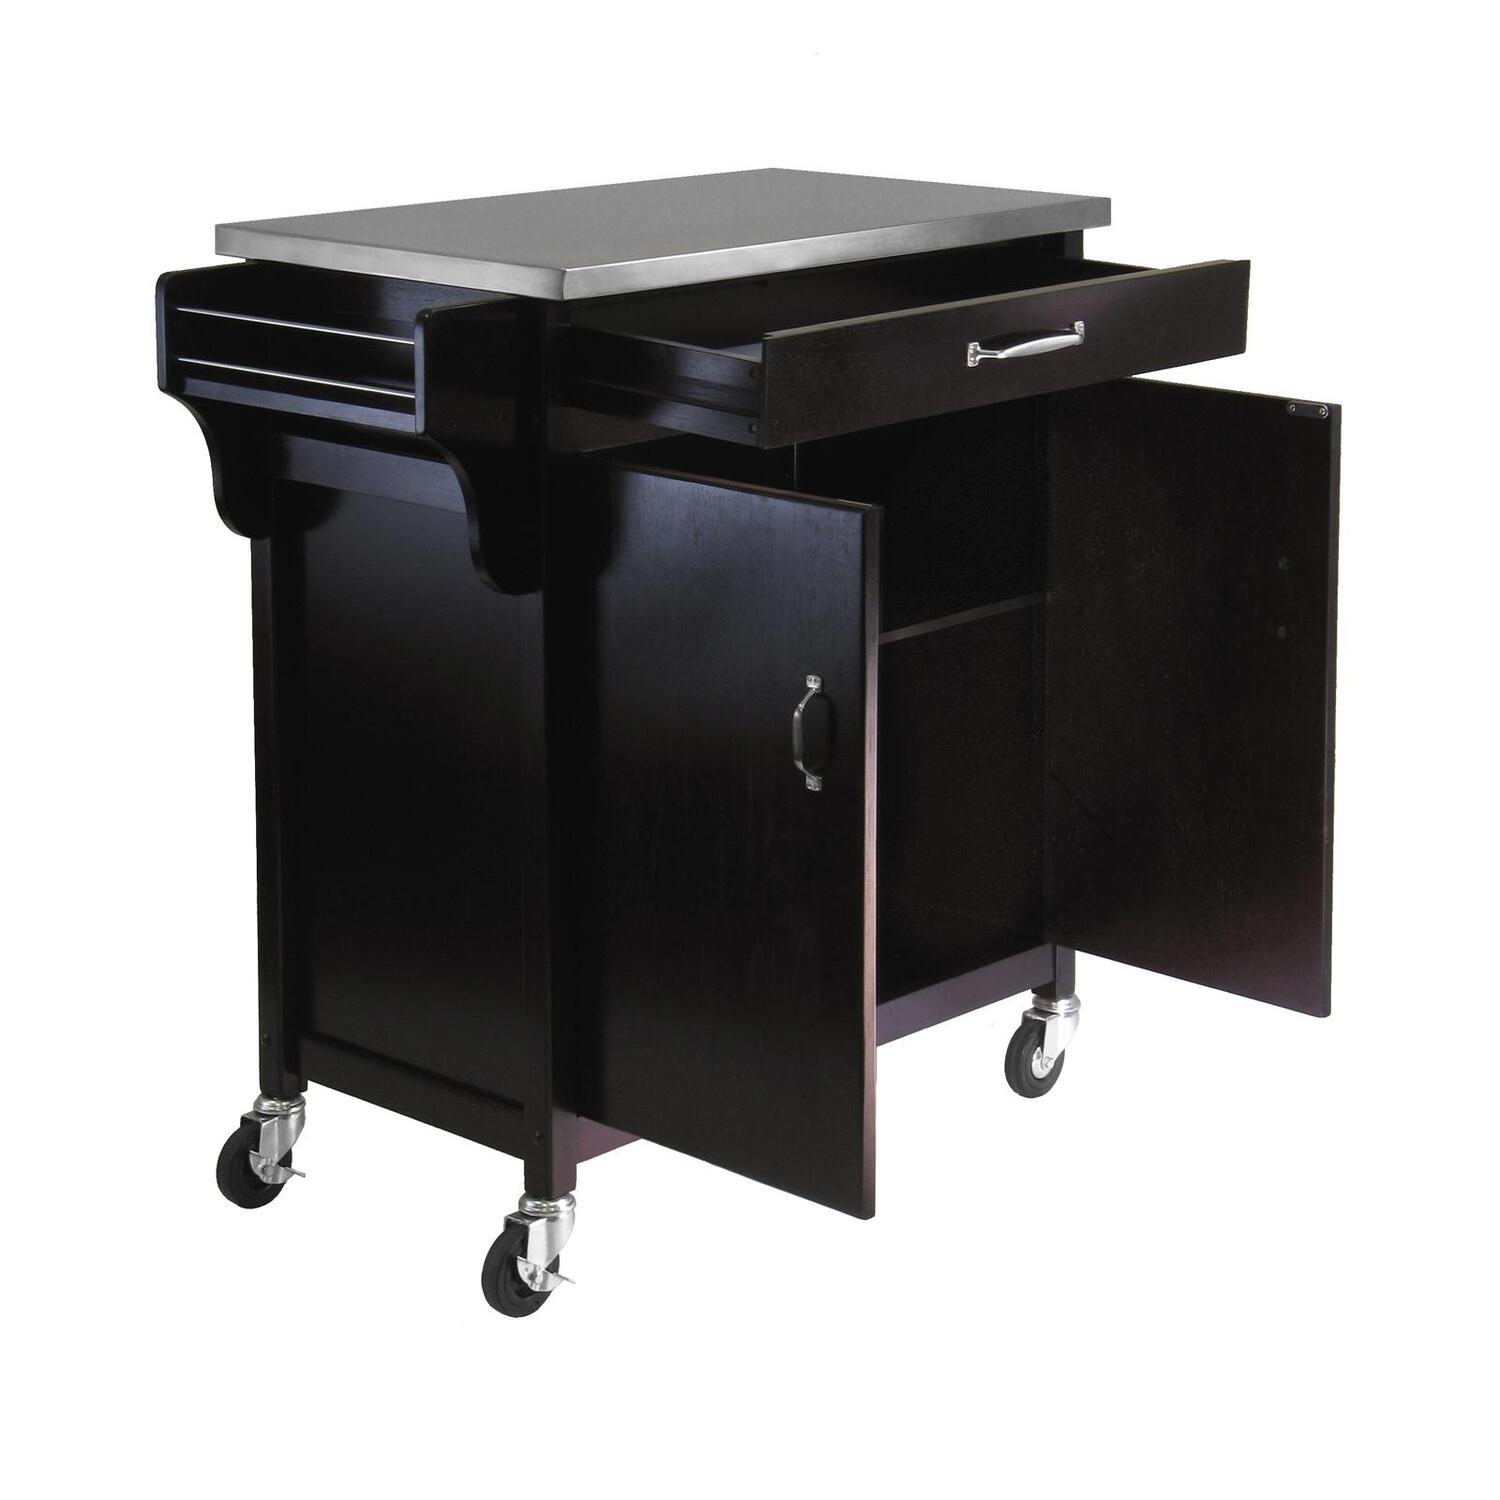 stainless steel carts kitchen unfinished cabinet doors furniture home goods appliances athletic gear fitness